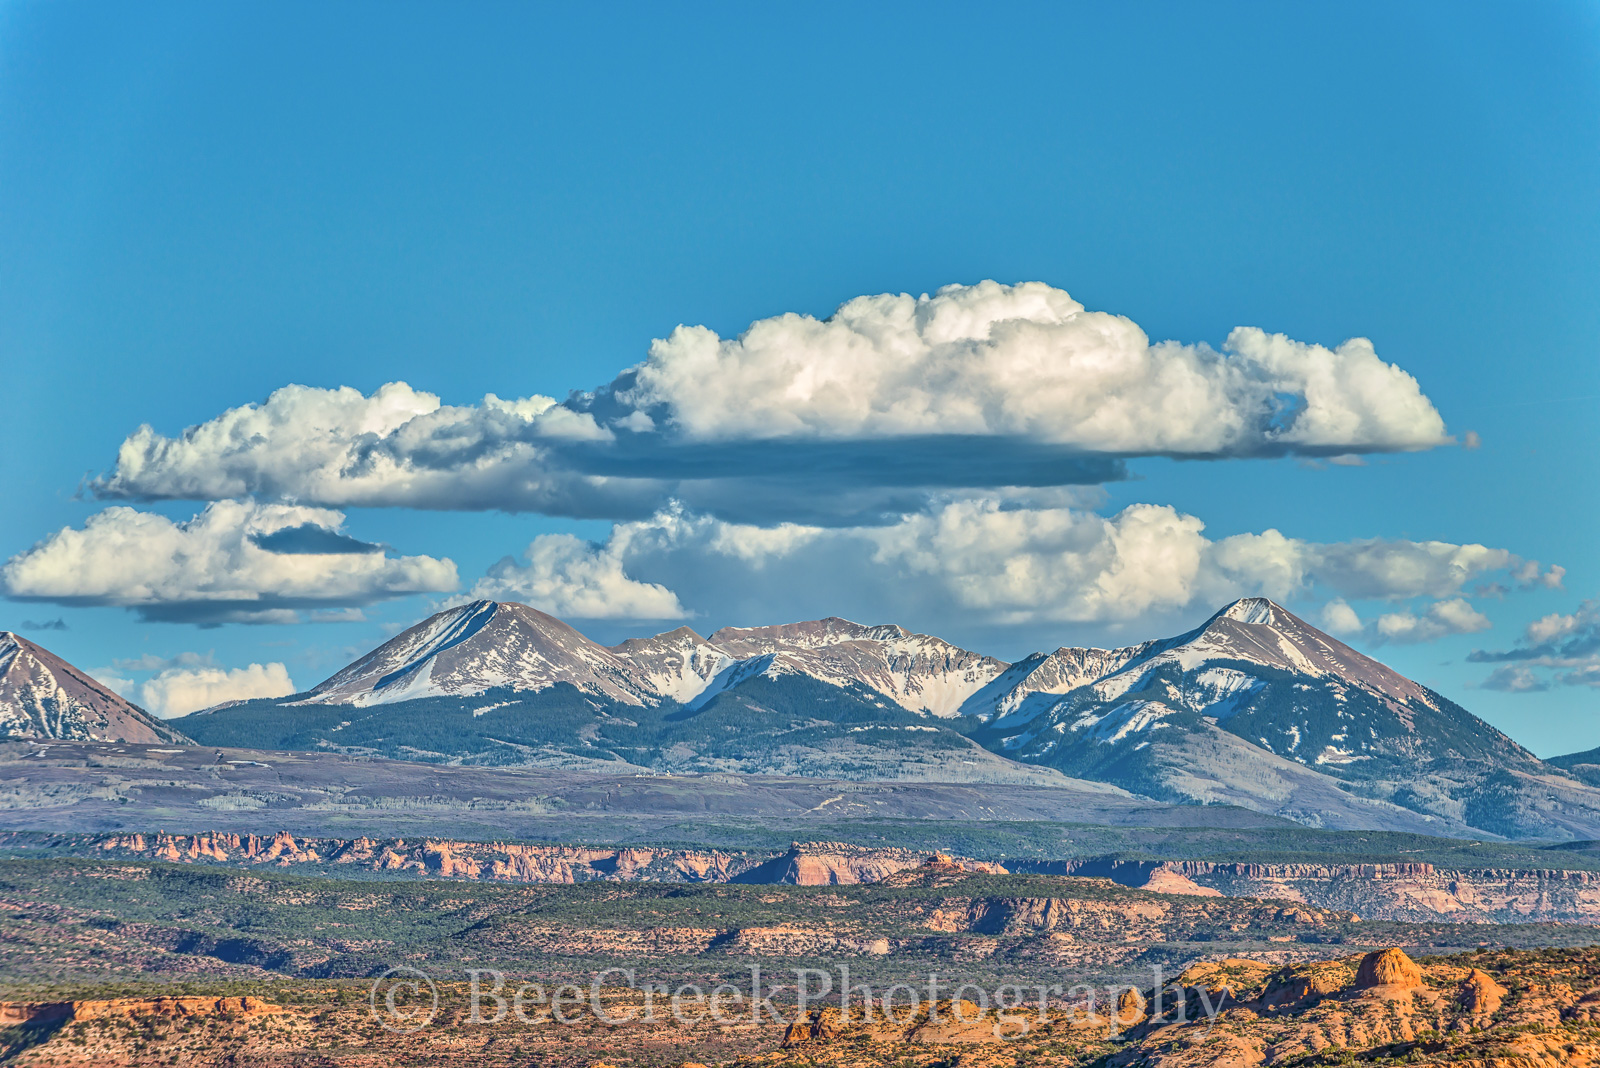 Fine Art photo of La Sal Mountains, La Sal Mountains Utal, images from Archer National Park, images of La Sal Mountain, la sal mountain, photo of La Sal Mountains, pictures of La Sal Mountain, photo